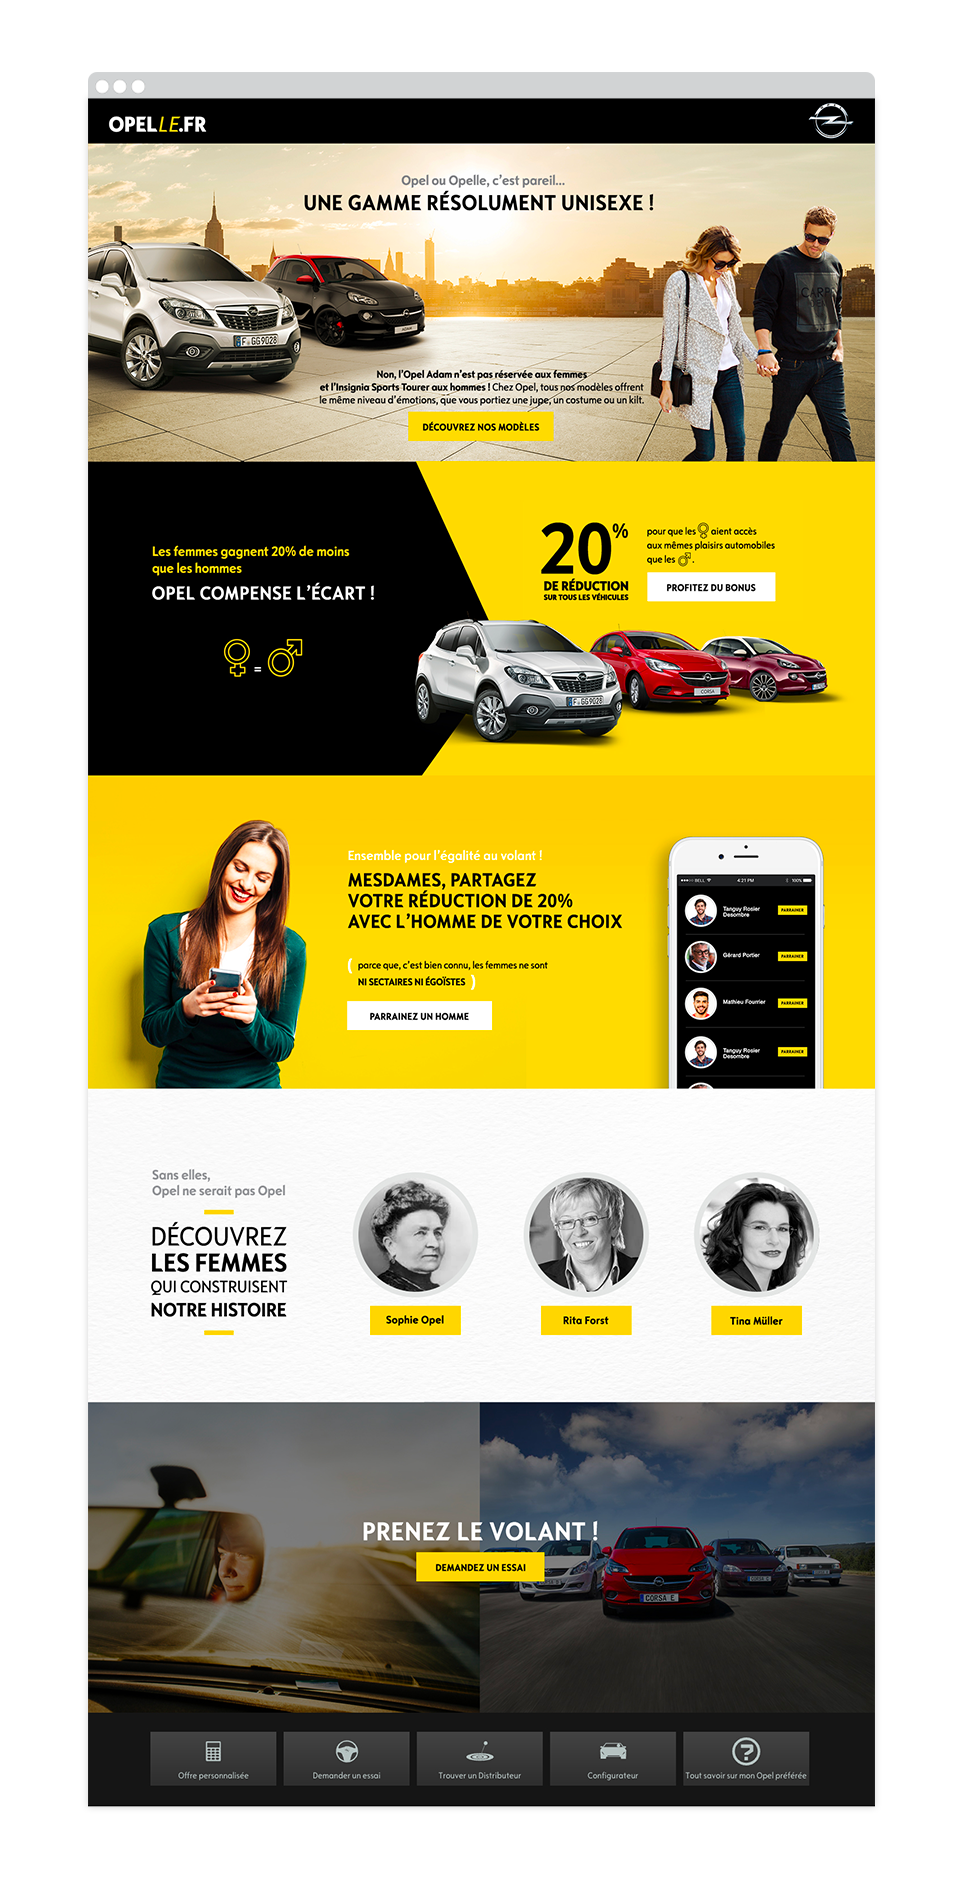 cathy-vuillemin-directrice-artistique-projets-opel-5